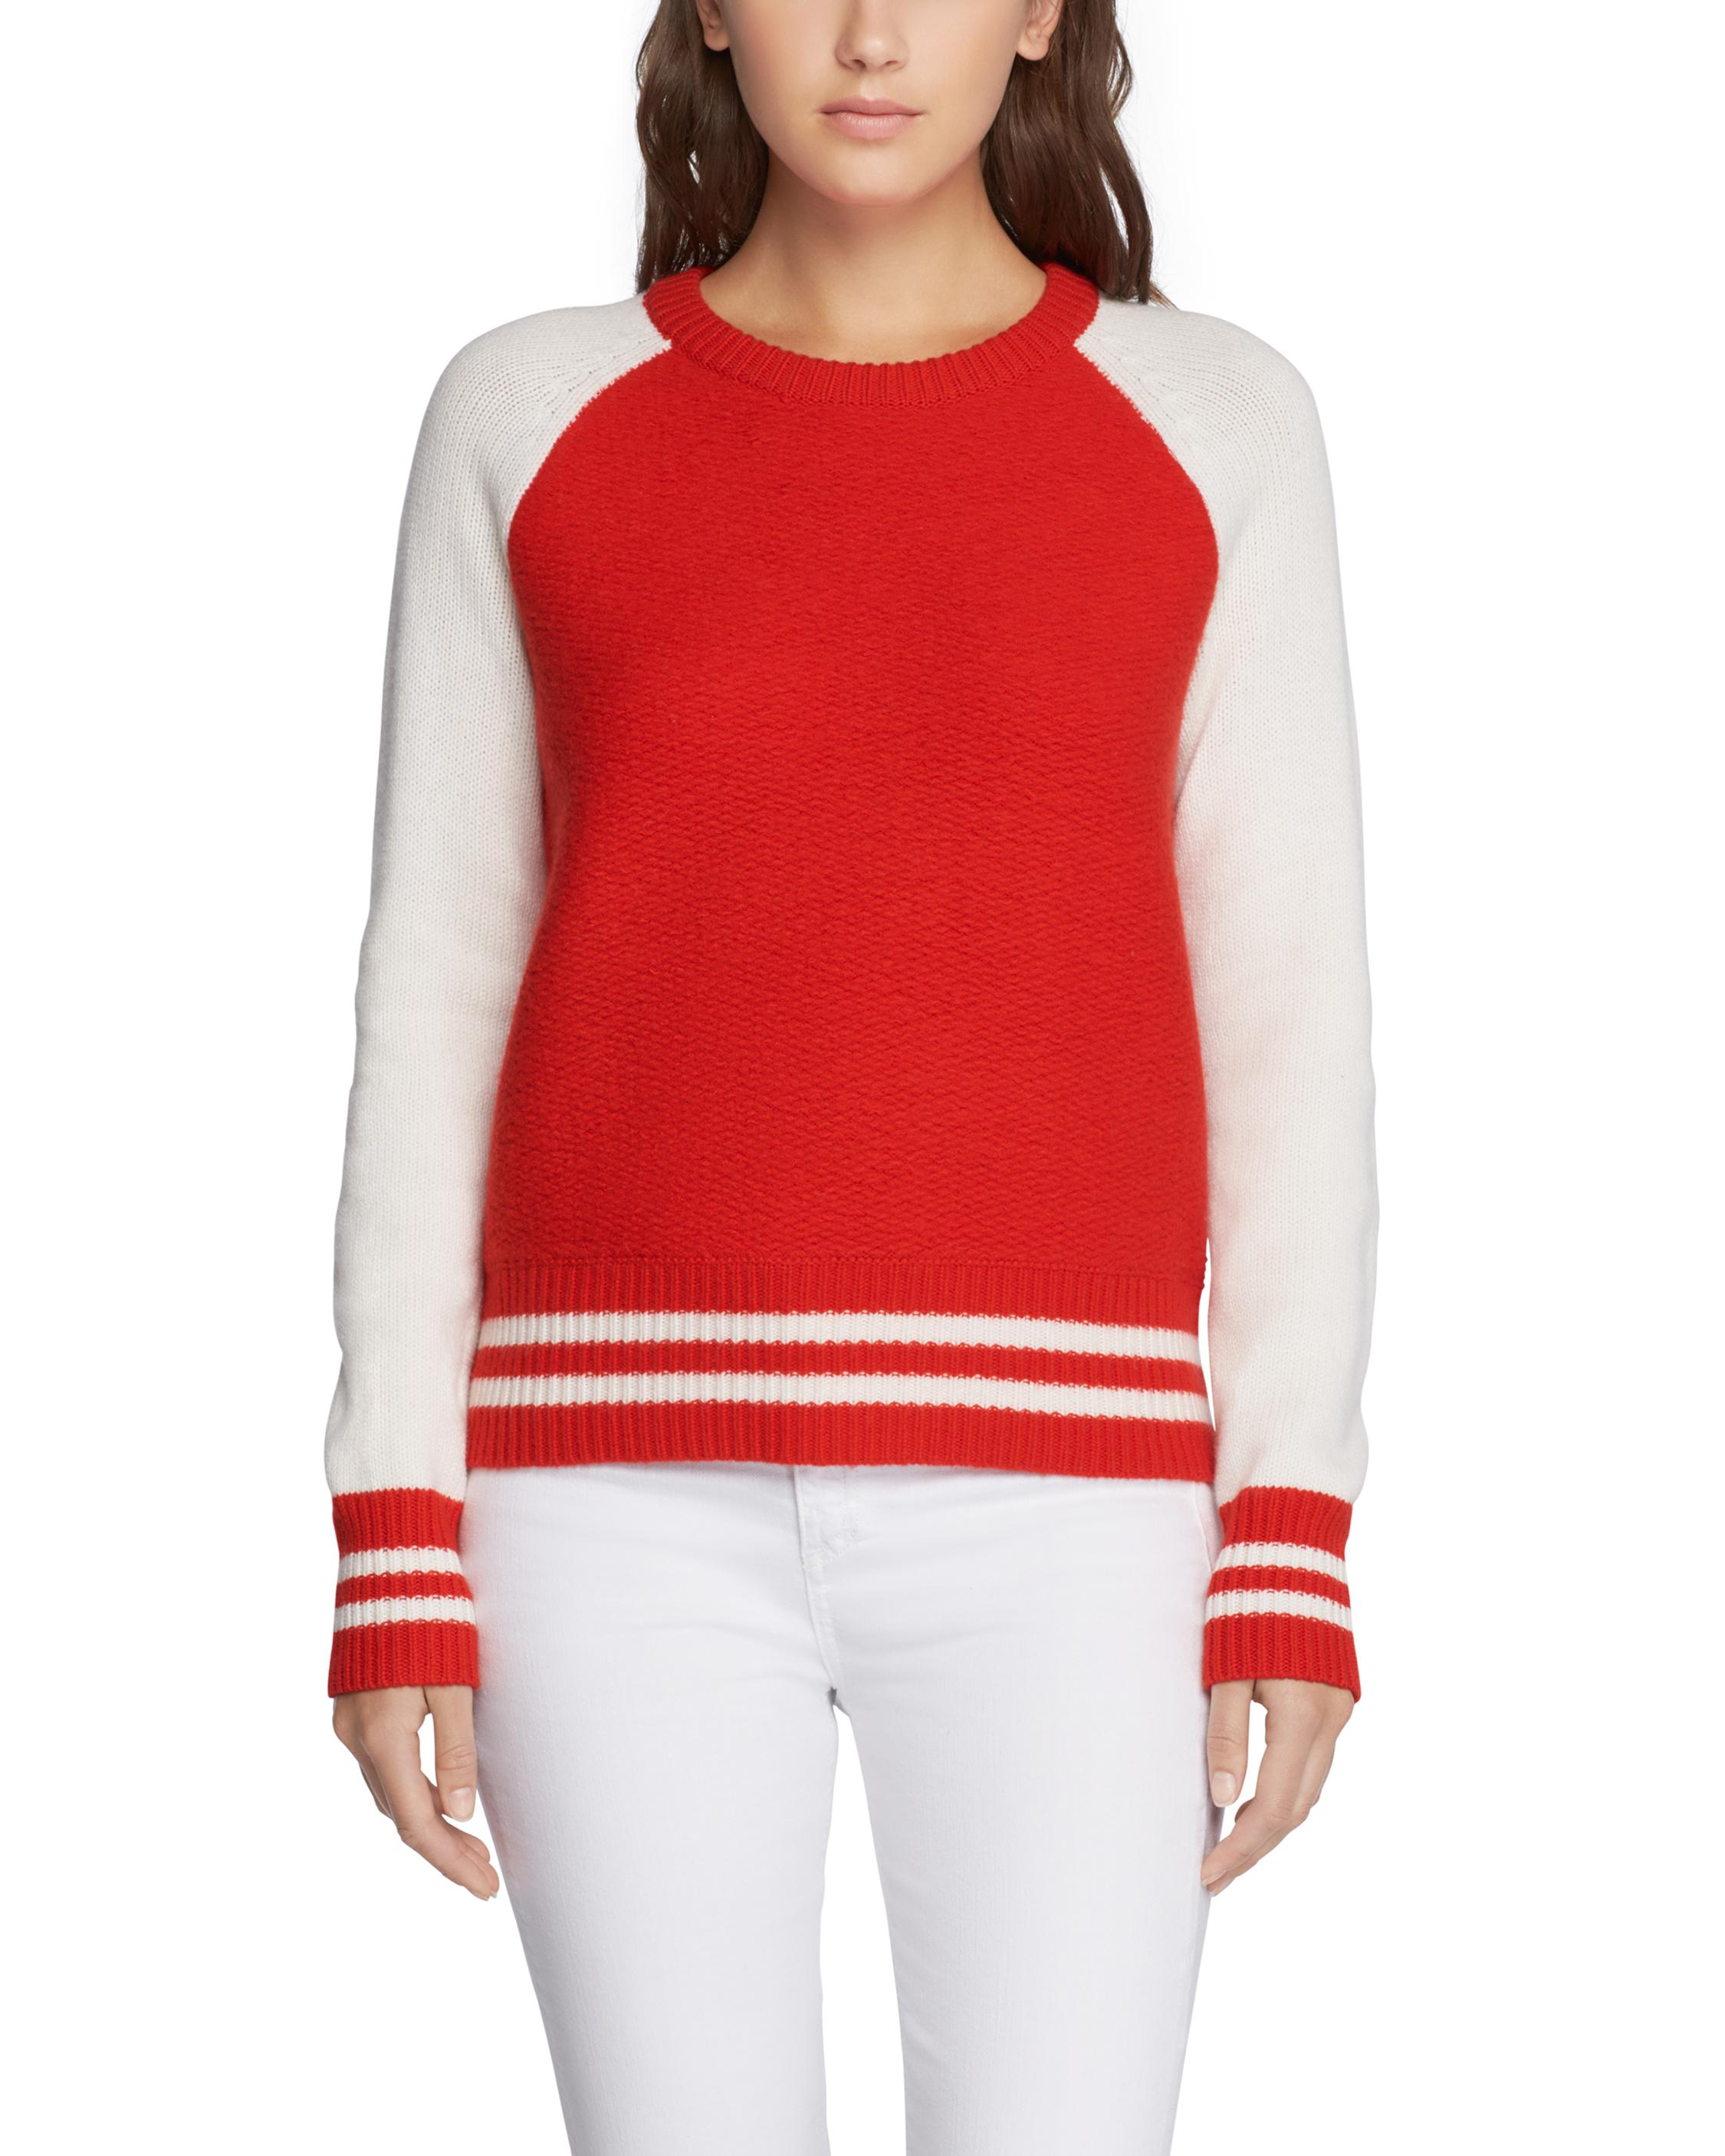 Rag & Bone Casual Knit Top Discount New Sale Latest Collections Genuine Cheap Price 9BaD8T